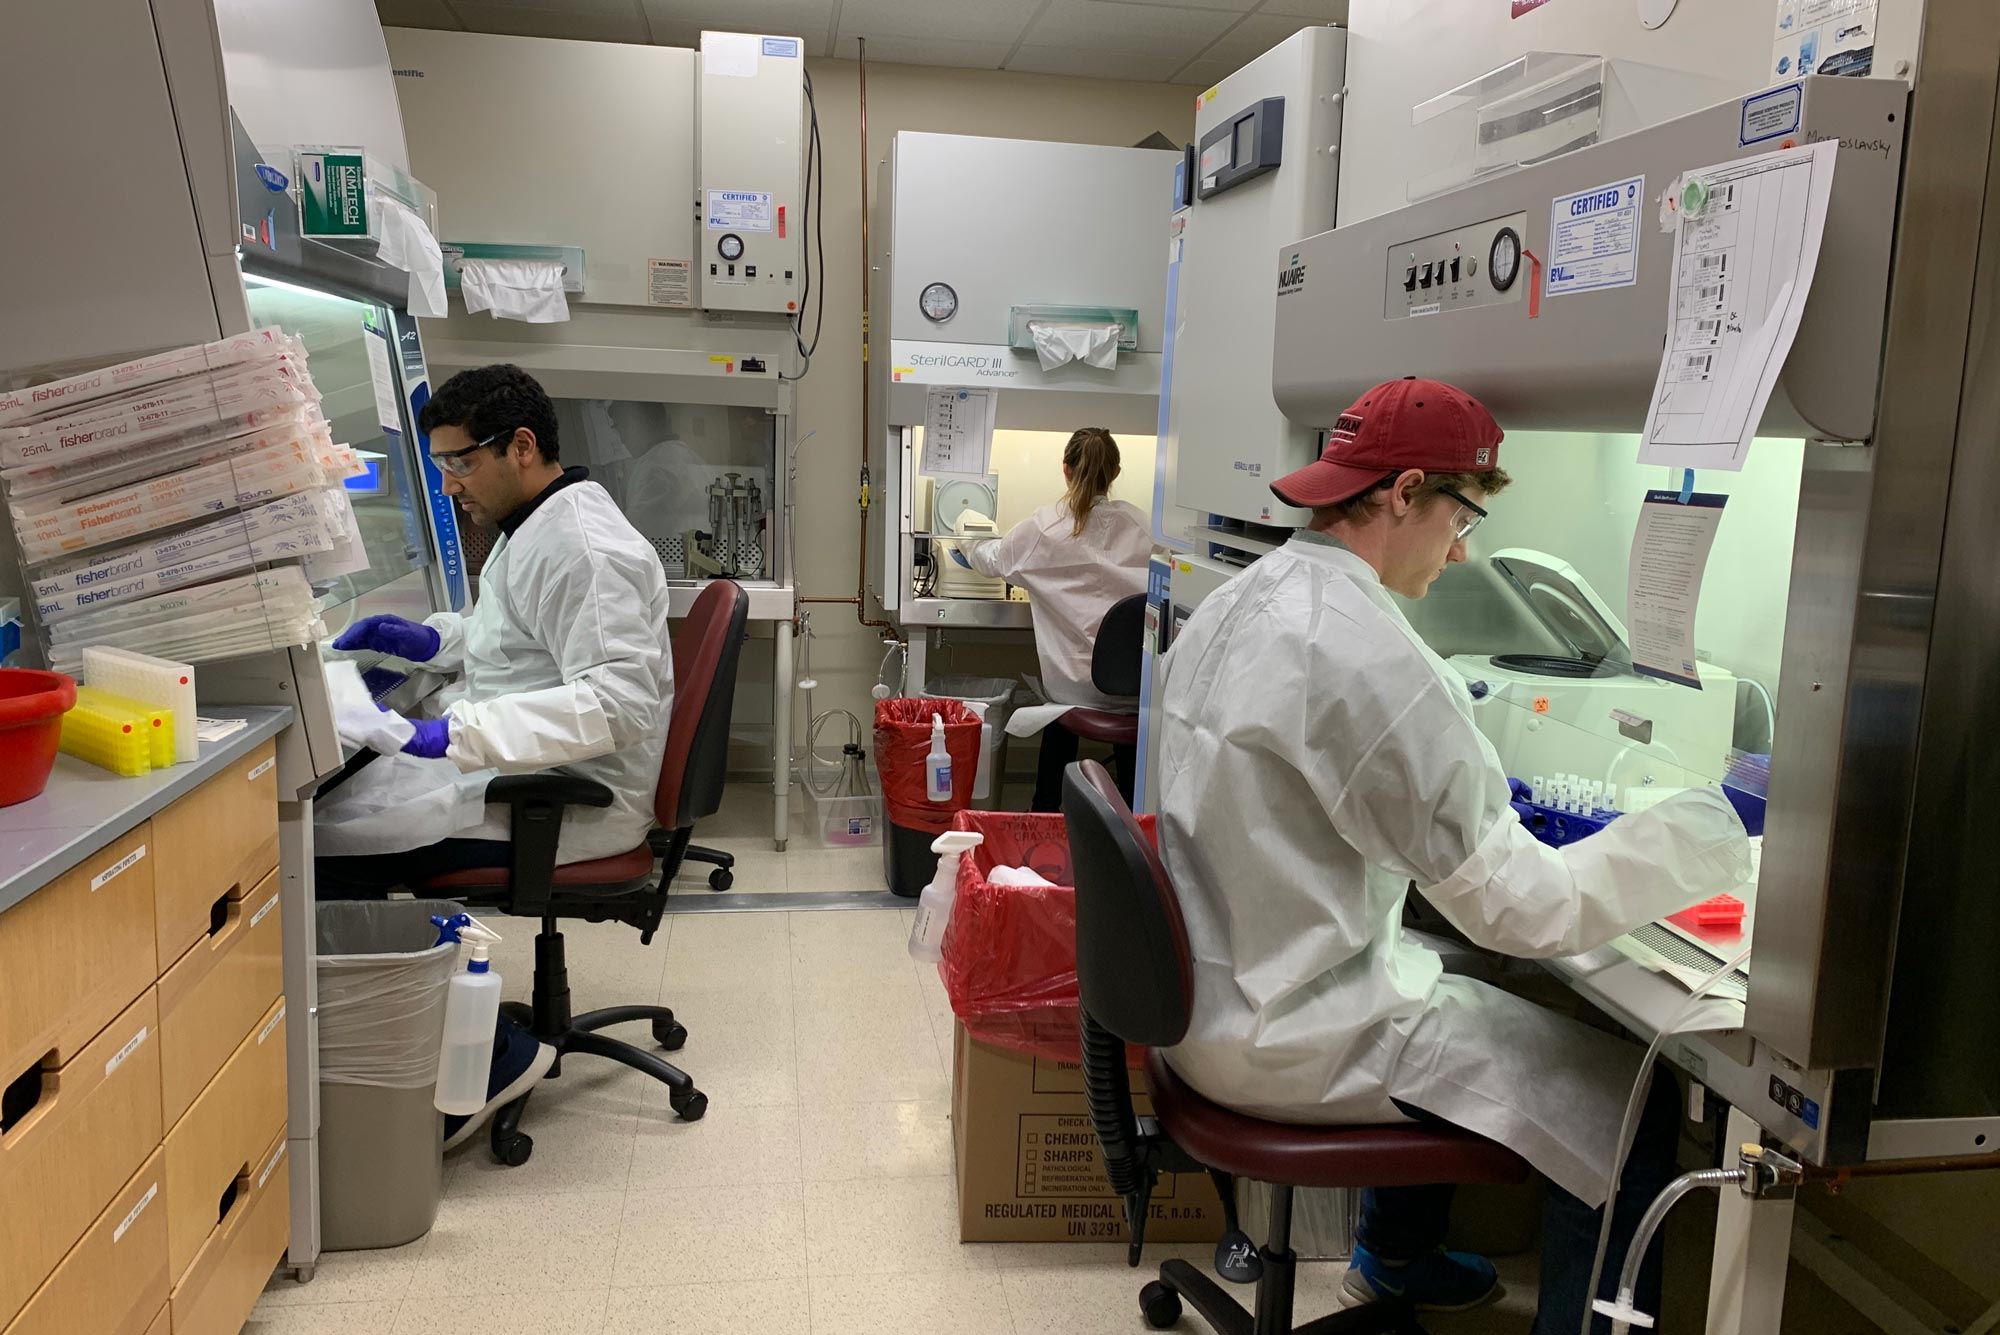 Center for Regenerative Medicine researchers Aditya Mithal, Claire Burgess, and Andrew McCracken prepare samples collected from Boston Medical Center patients suspected to be infected with the novel coronavirus.